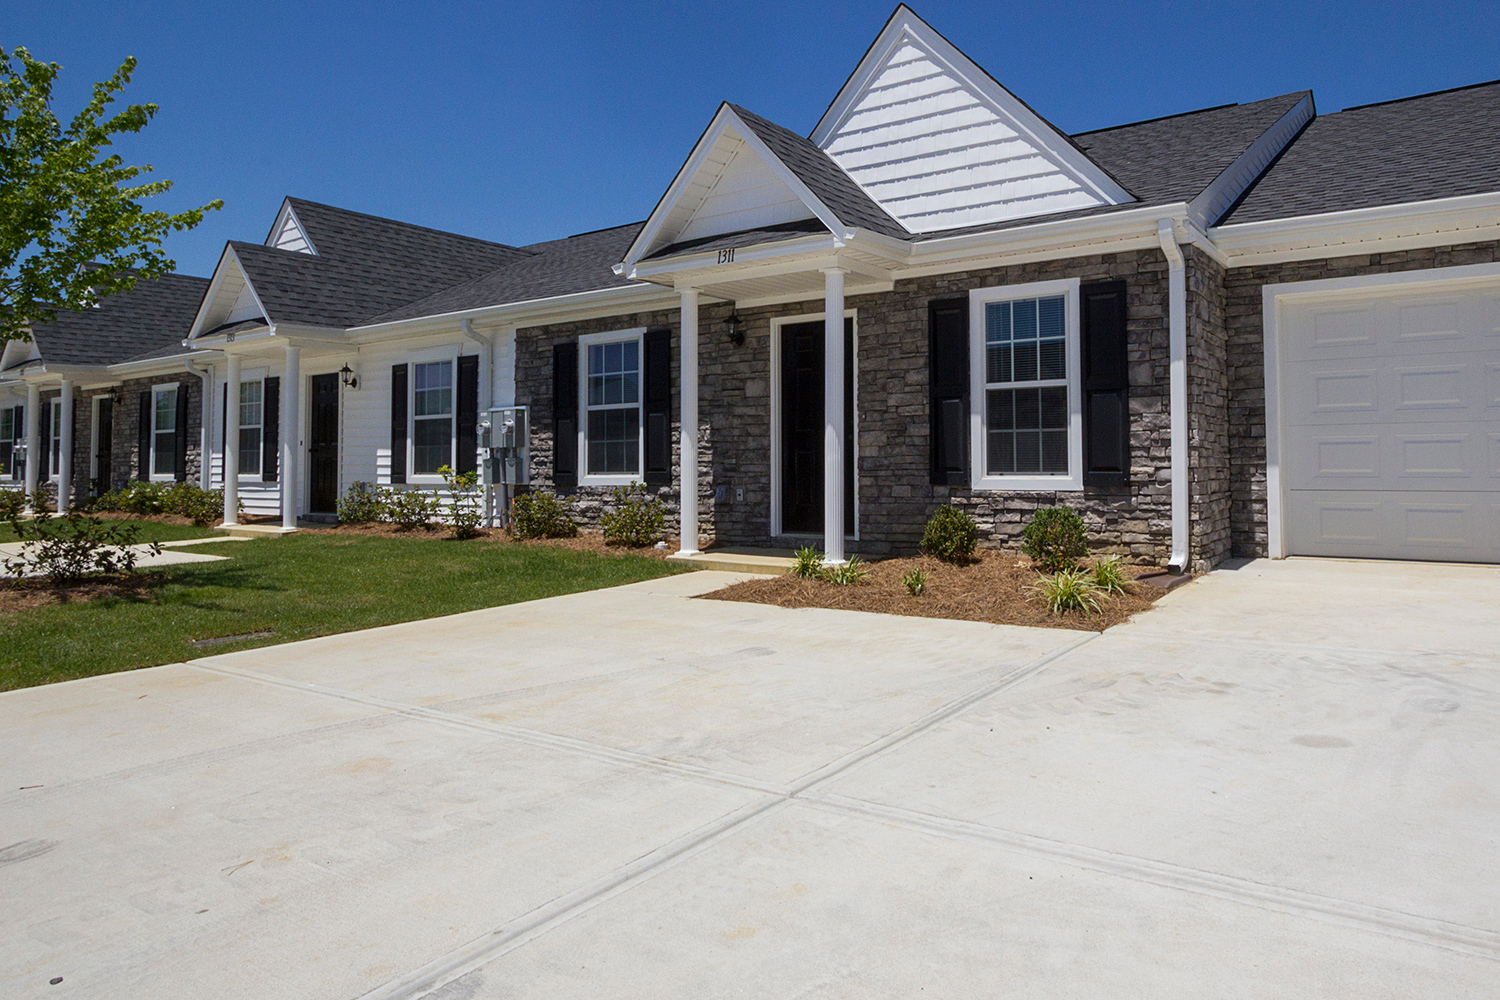 Highborne apartments and townhomes in augusta georgia - 3 bedroom apartments in augusta ga ...